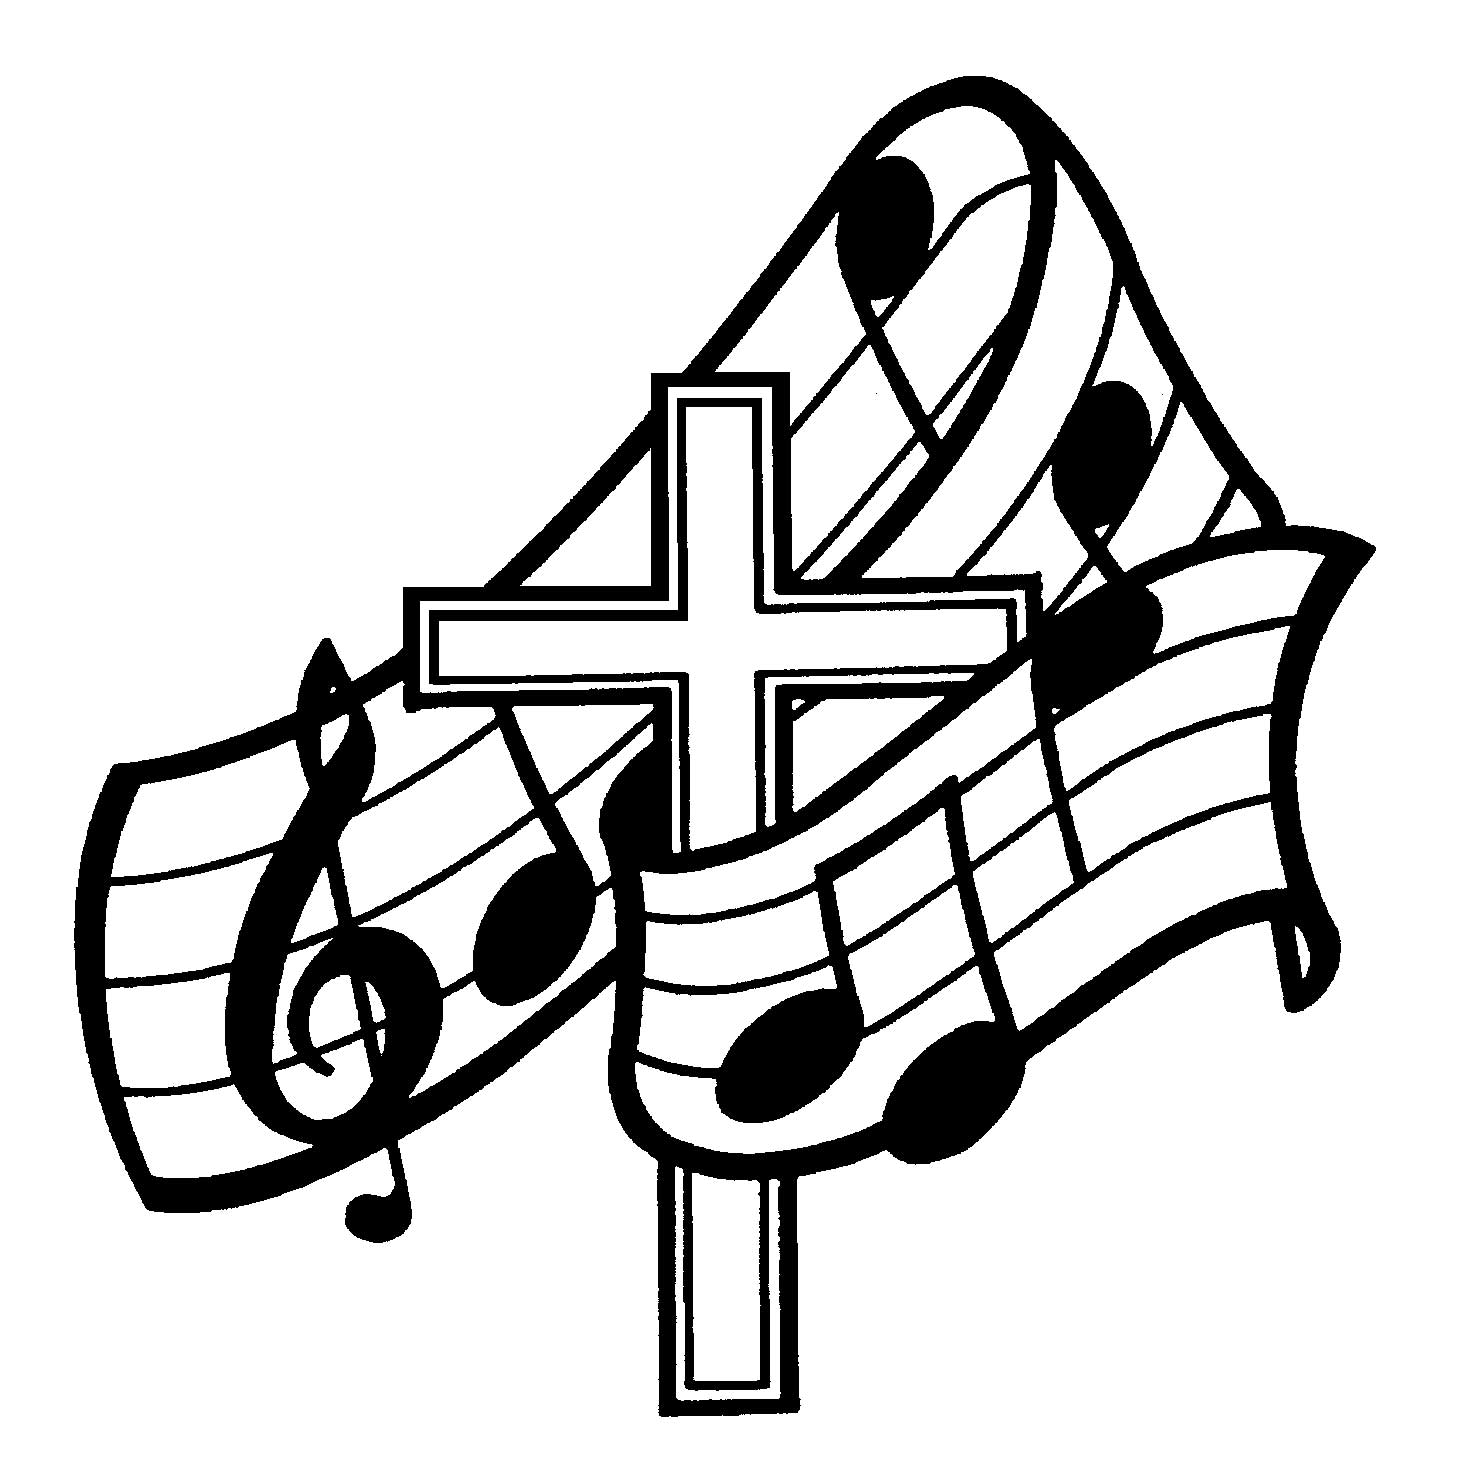 Free People Singing In Church Download Free Clip Art Collection Of Awesome isaac and Rebekah Coloring Pages Design Collection